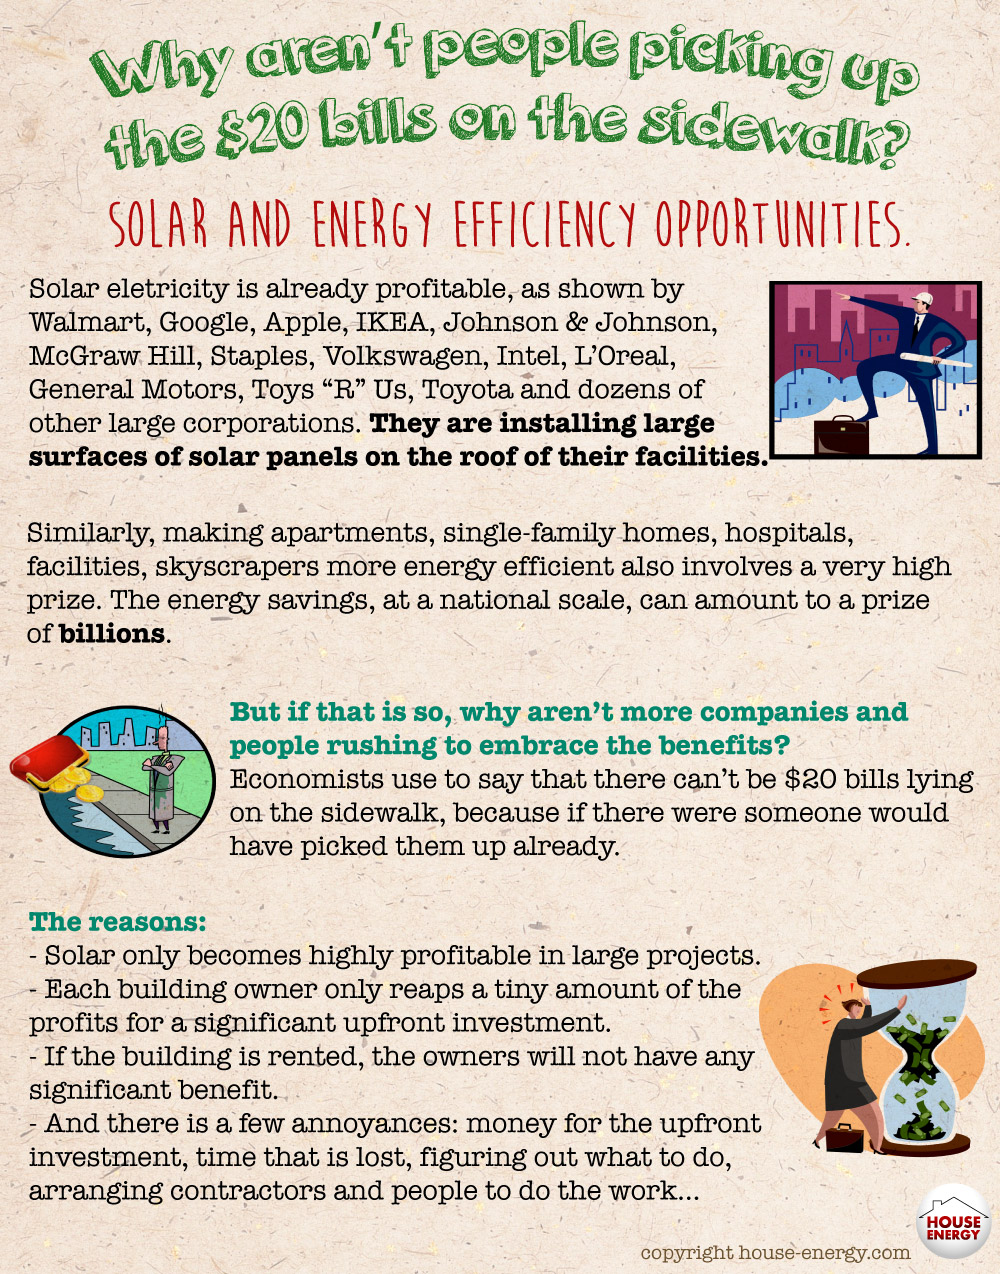 Solar and energy efficiency opportunities